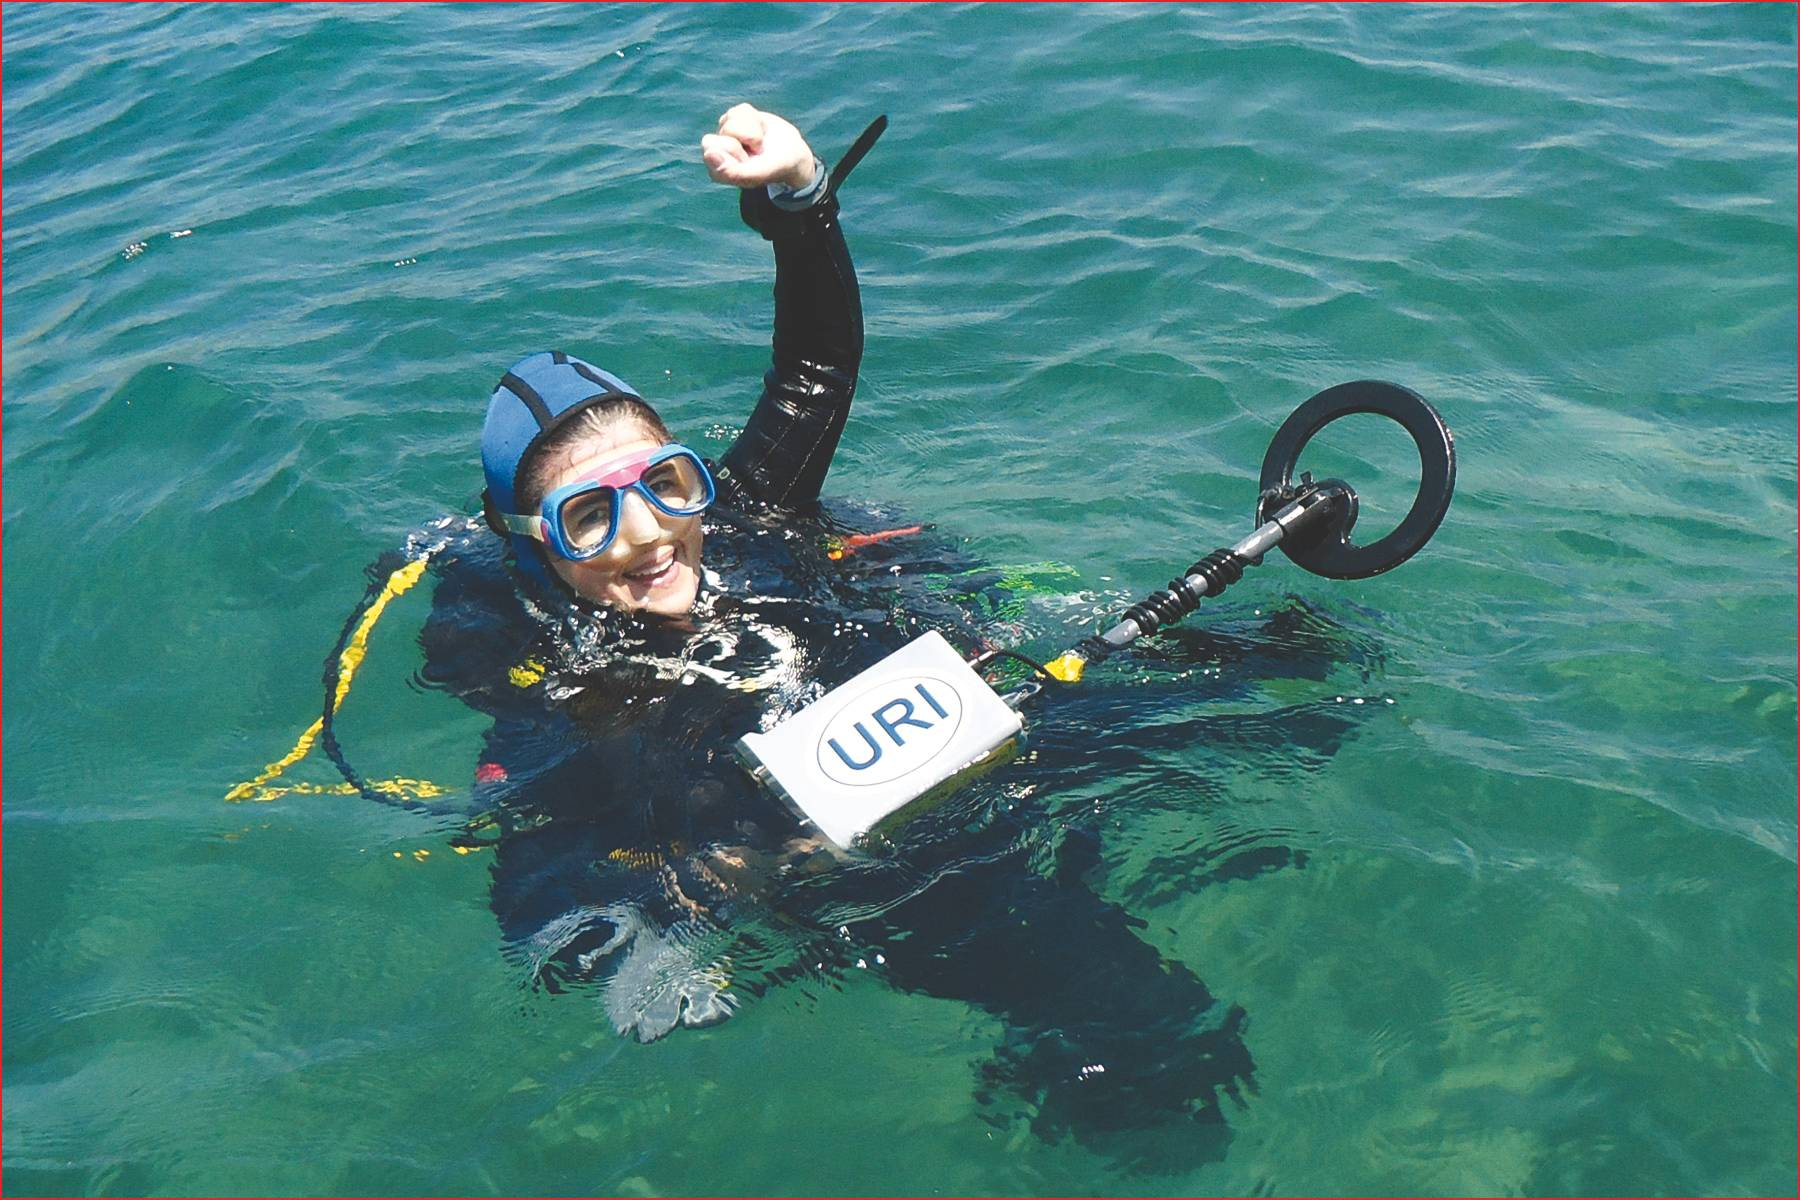 University of Rhode Island's Dr. Bridget Buxton dives on ancient shipwrecks in Israel with the Pulse 8X metal detector